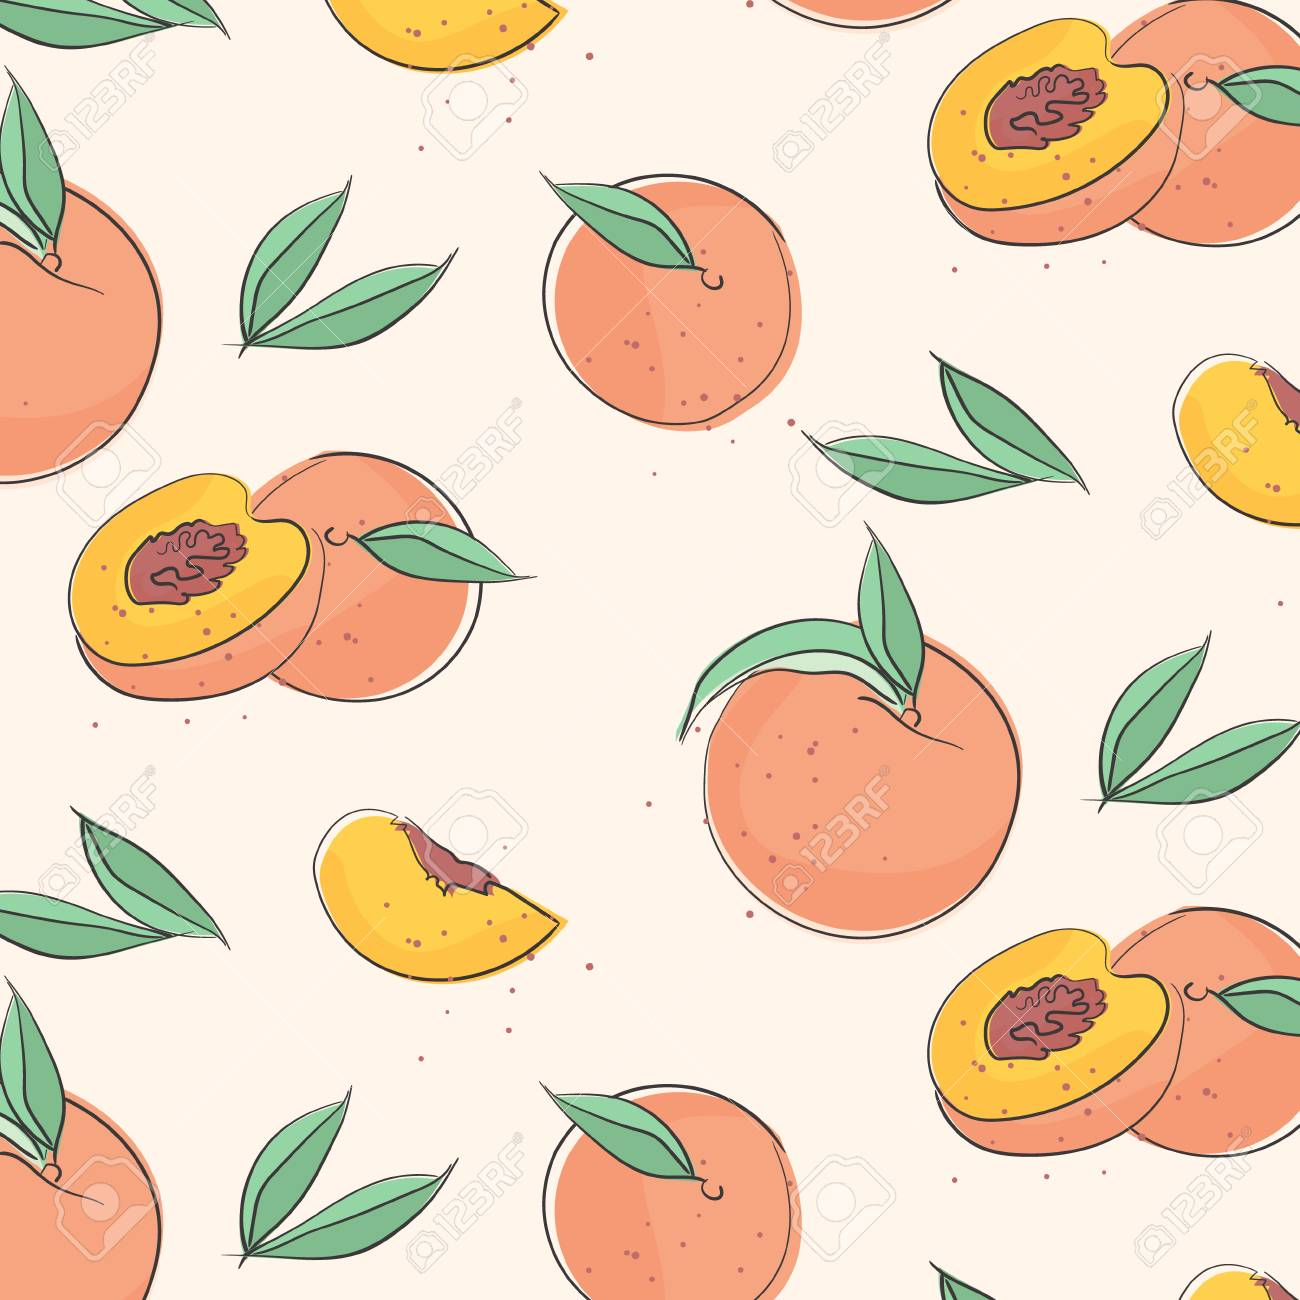 peach macro fruit with leaves tropical nectarine wallpaper royalty free cliparts vectors and stock illustration image 104763936 peach macro fruit with leaves tropical nectarine wallpaper